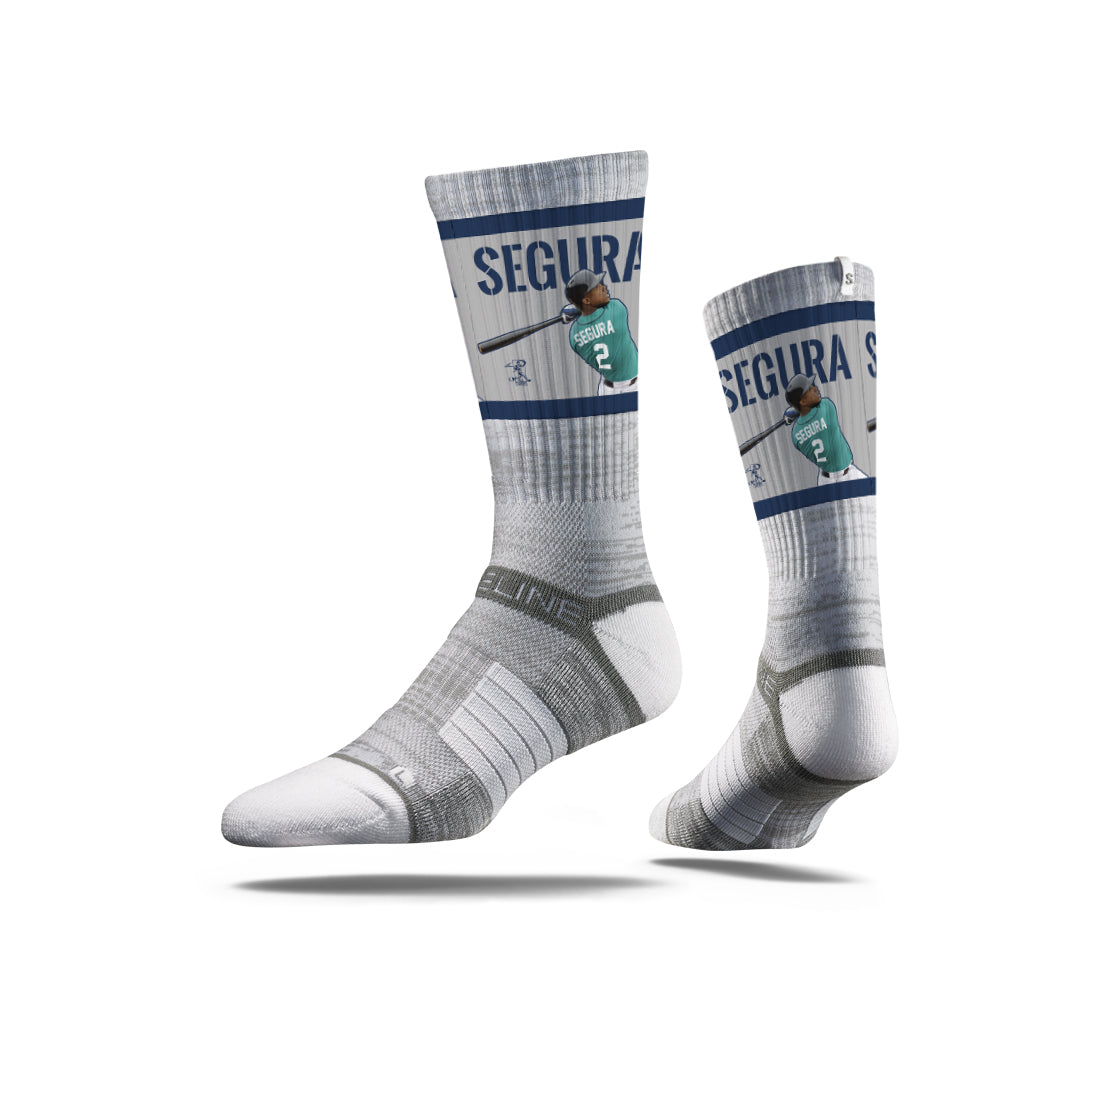 Jean Segura Action Grey Crew Socks